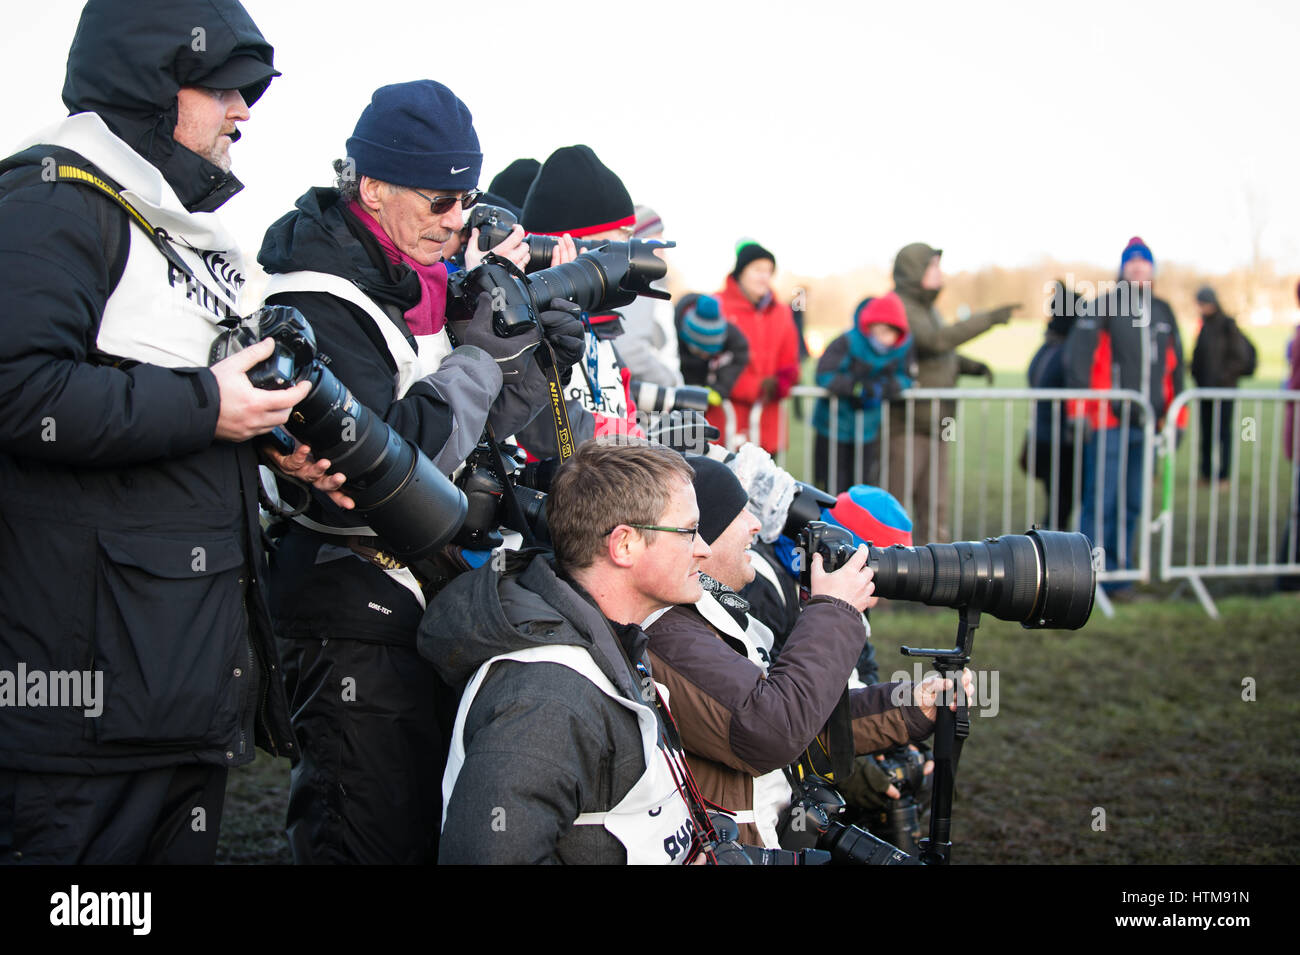 Édimbourg, Écosse, Royaume-Uni, 10 janvier 2015 - divers photographes de presse au grand cross country Photo Stock